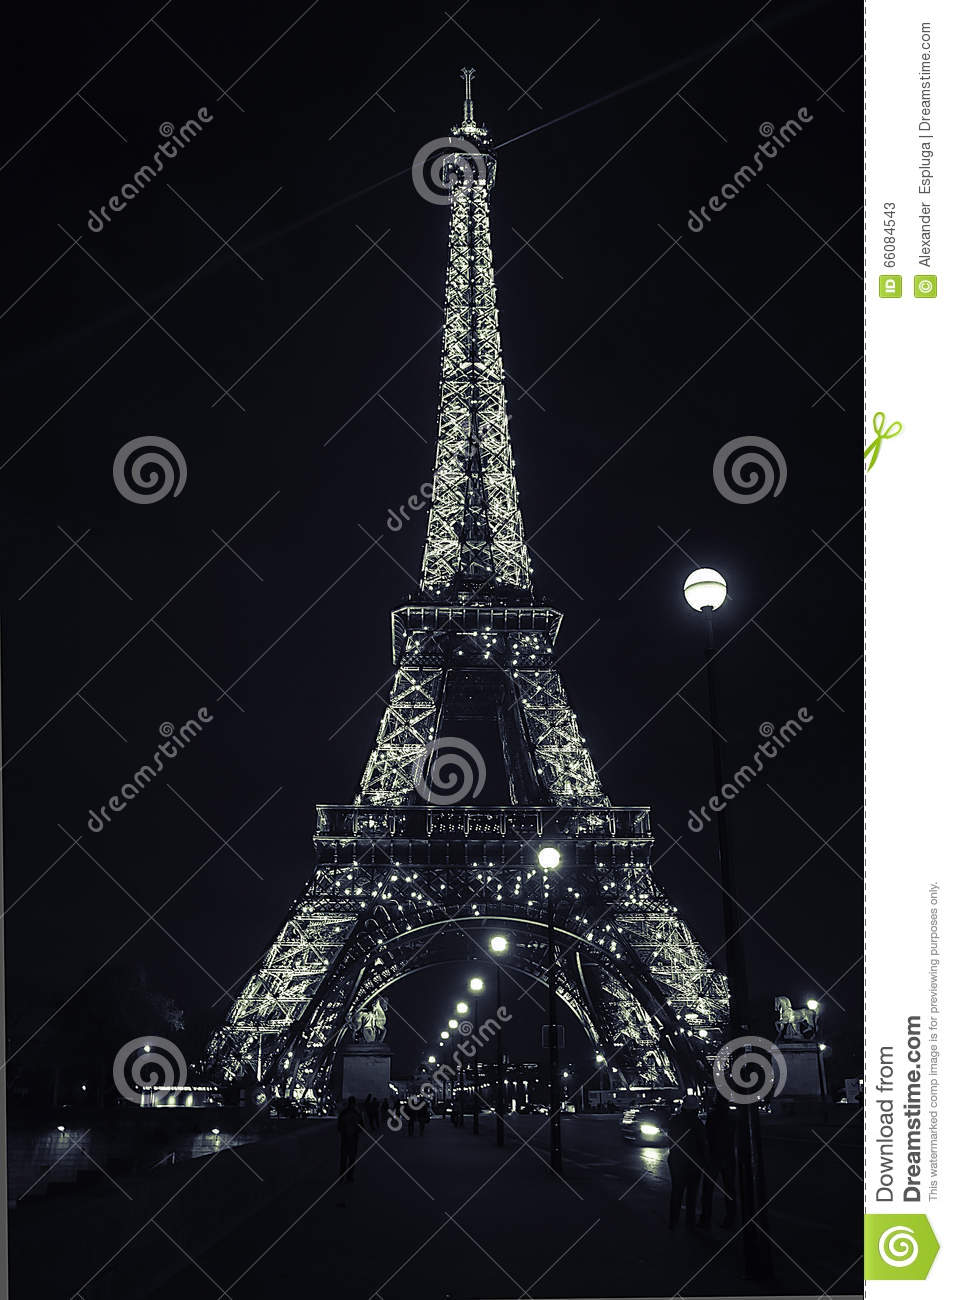 illuminated eiffel tower with black and white paris editorial photo 46158767. Black Bedroom Furniture Sets. Home Design Ideas